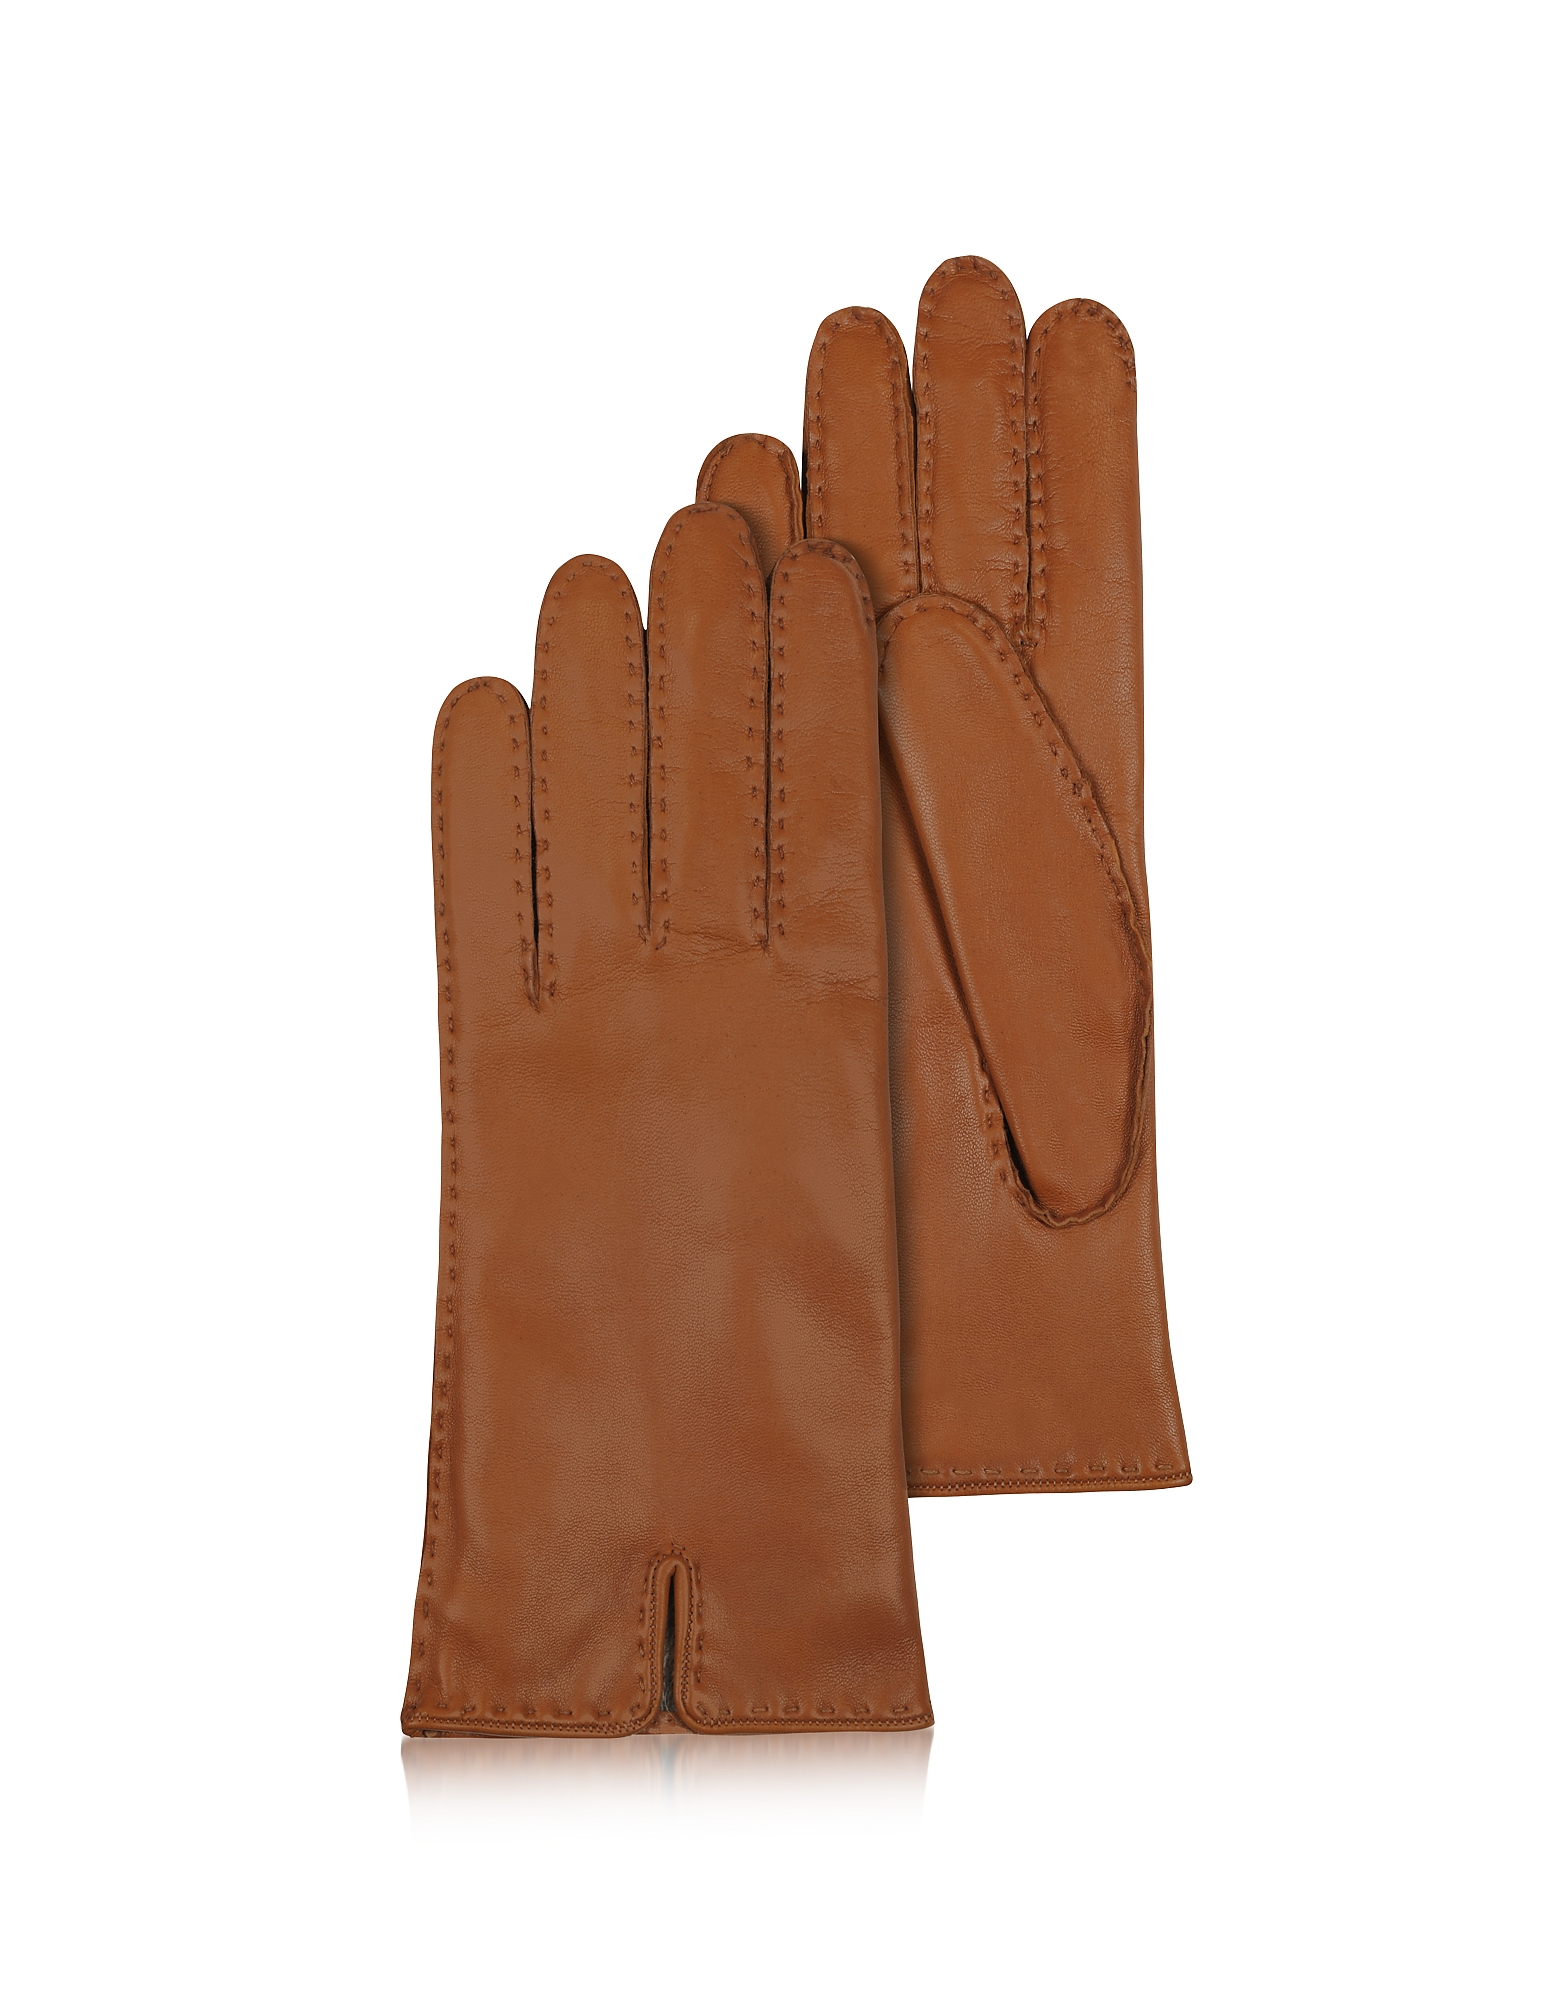 Women's Cashmere Lined Brown Italian Leather Gloves от Forzieri.com INT